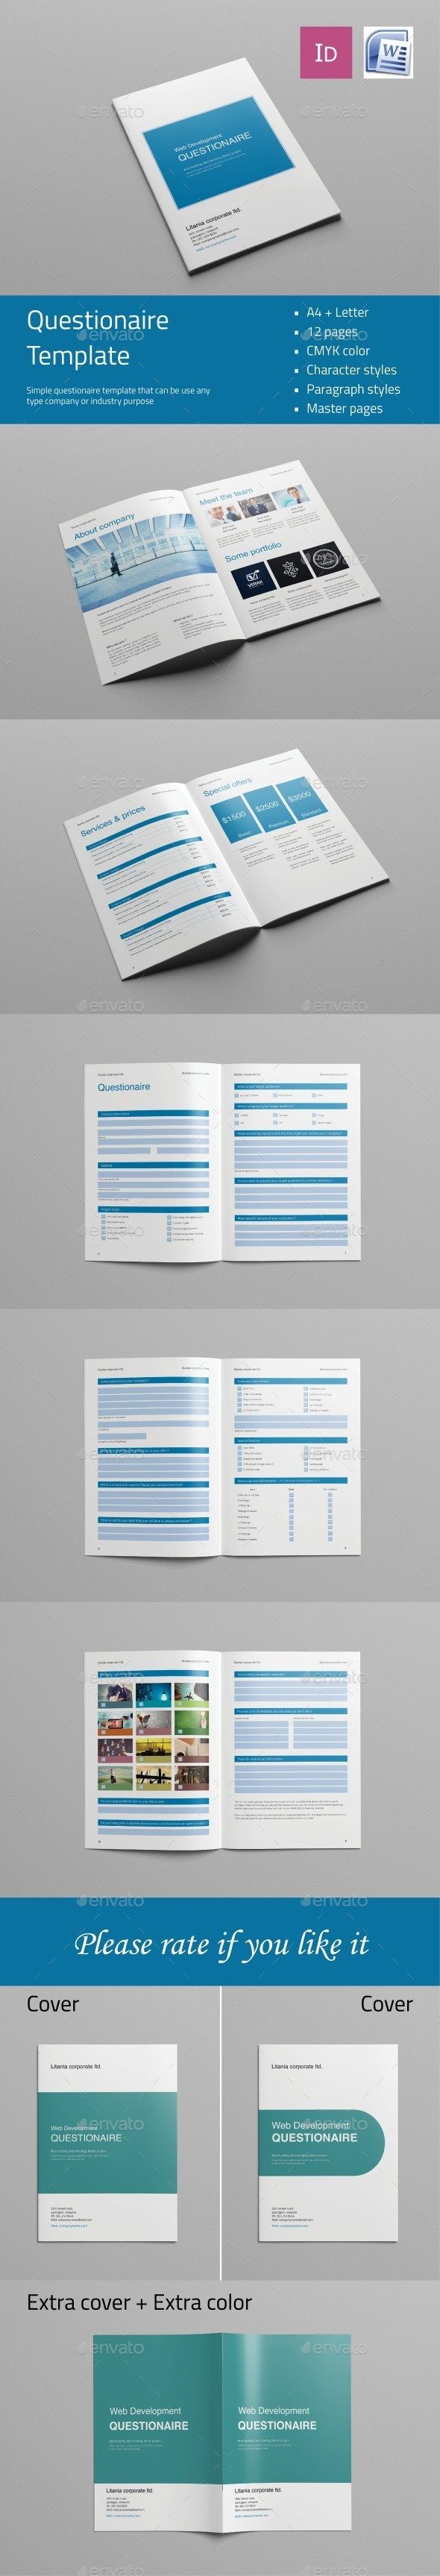 19 best Anketa images on Pinterest | Questionnaire design, Briefs ...